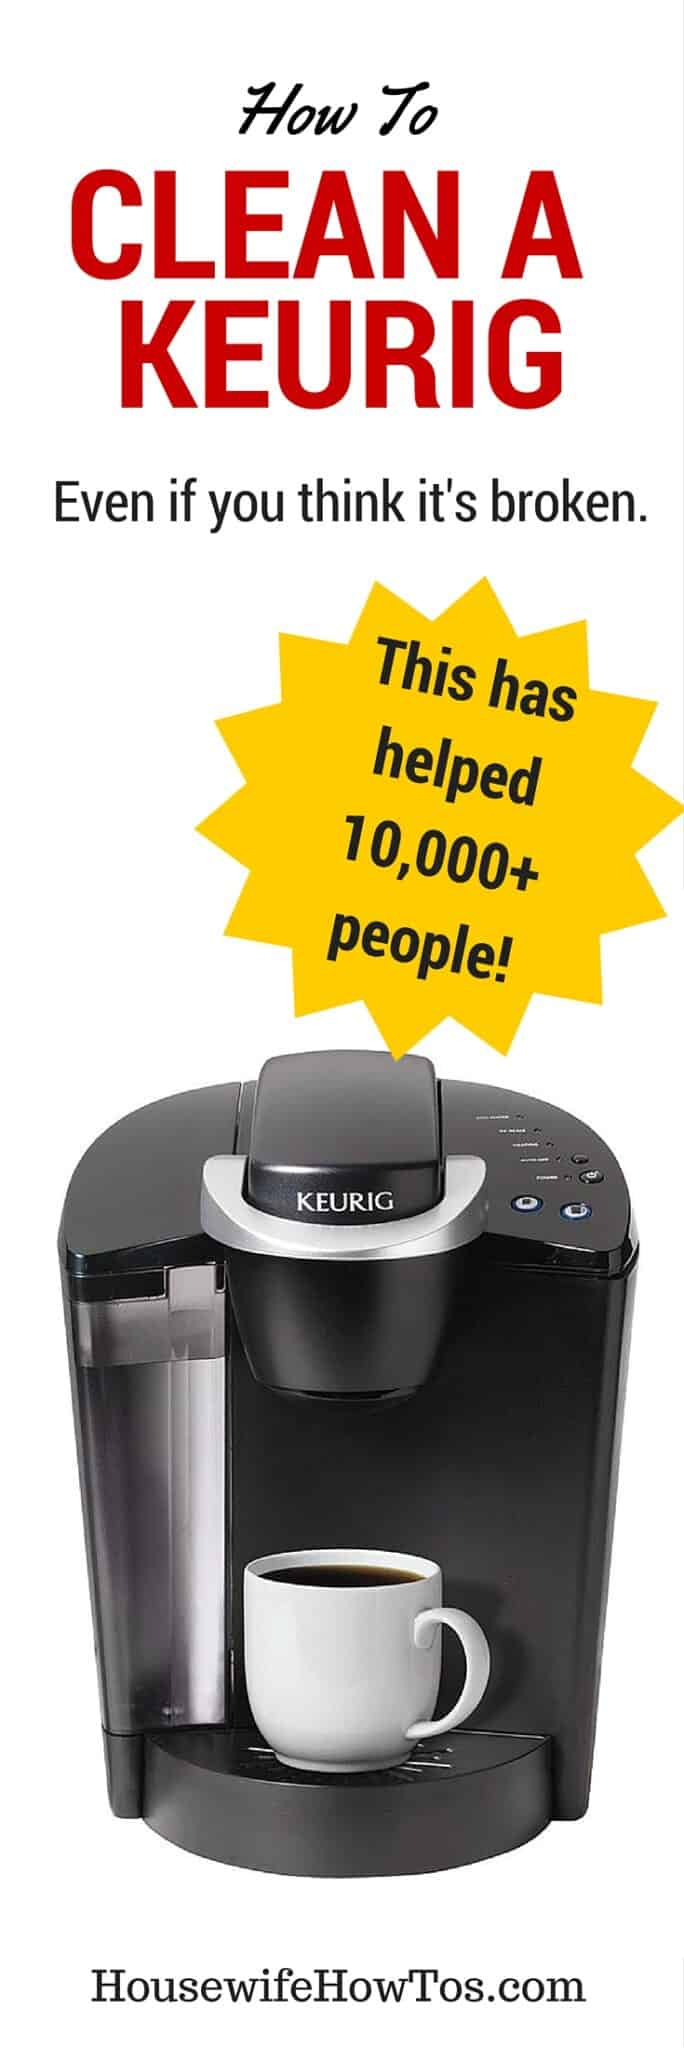 Pin How To Clean a Keurig